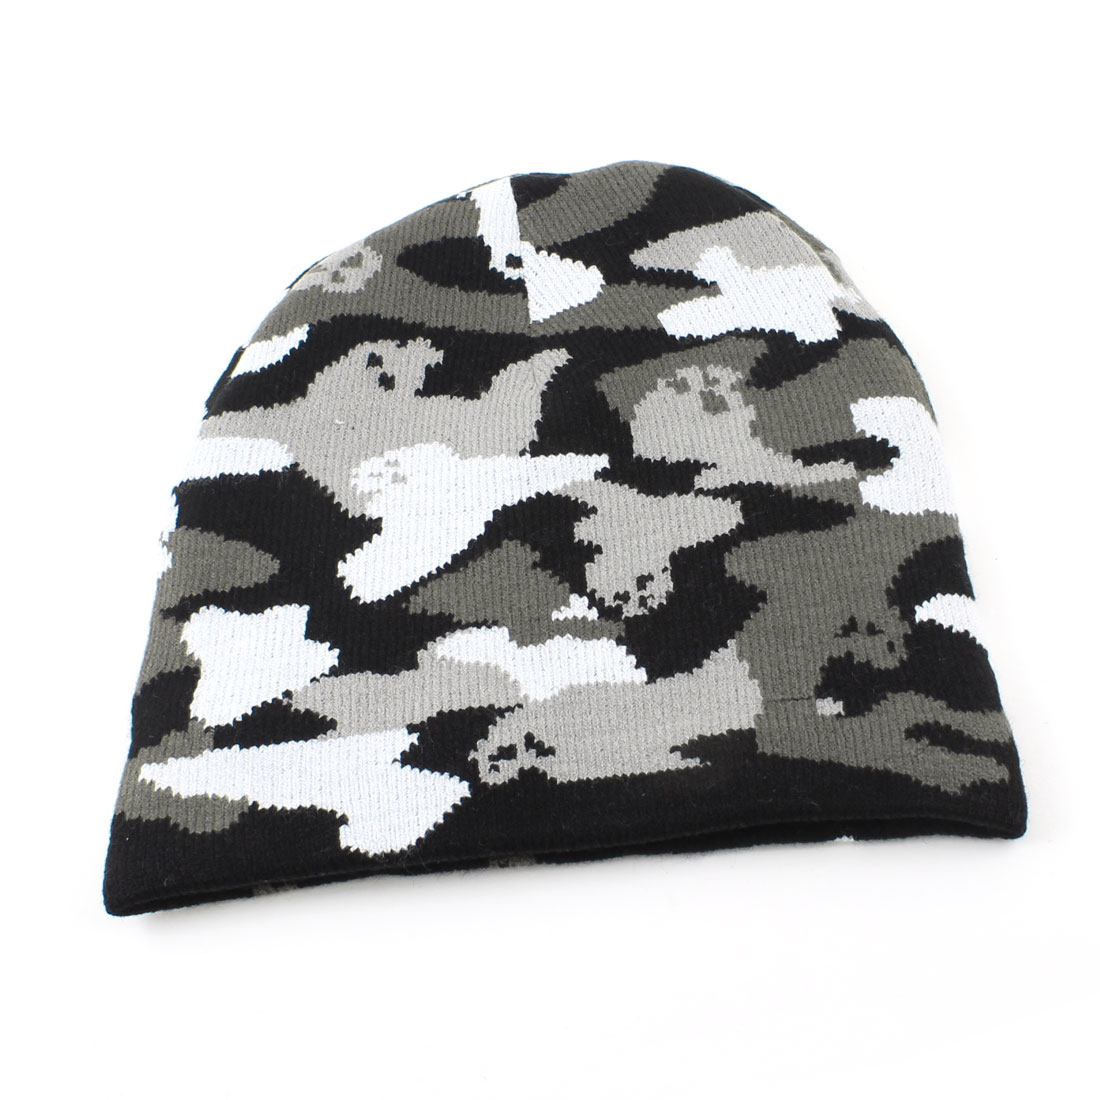 Man Soft Gray Black White Camouflage Pattern Cap Casual Warm Beanie Hat